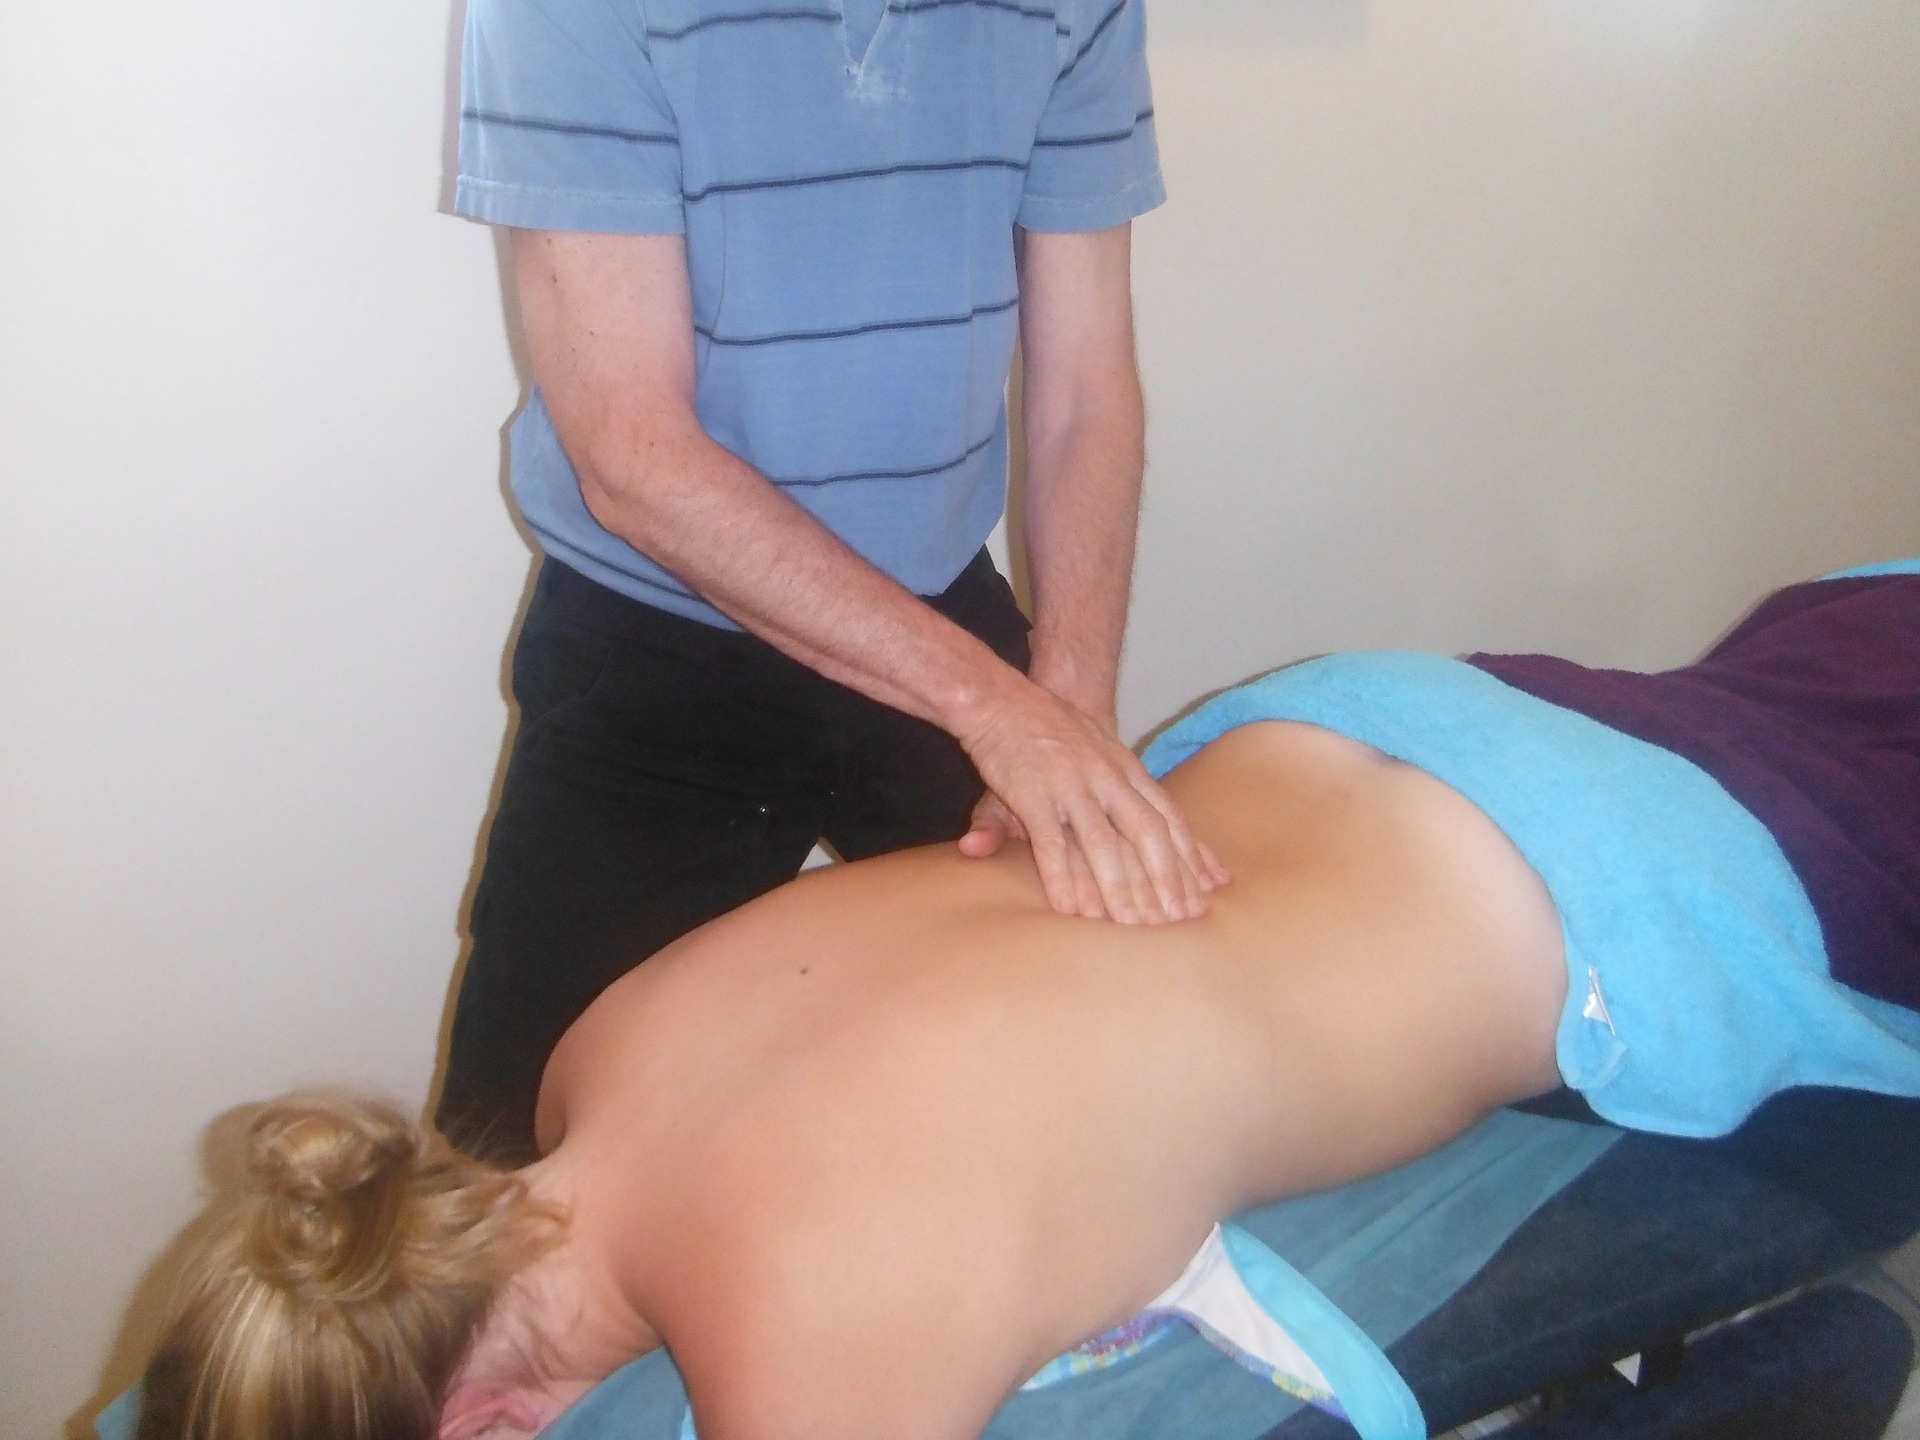 bbs_1412127228_massage-272822_1920.jpg